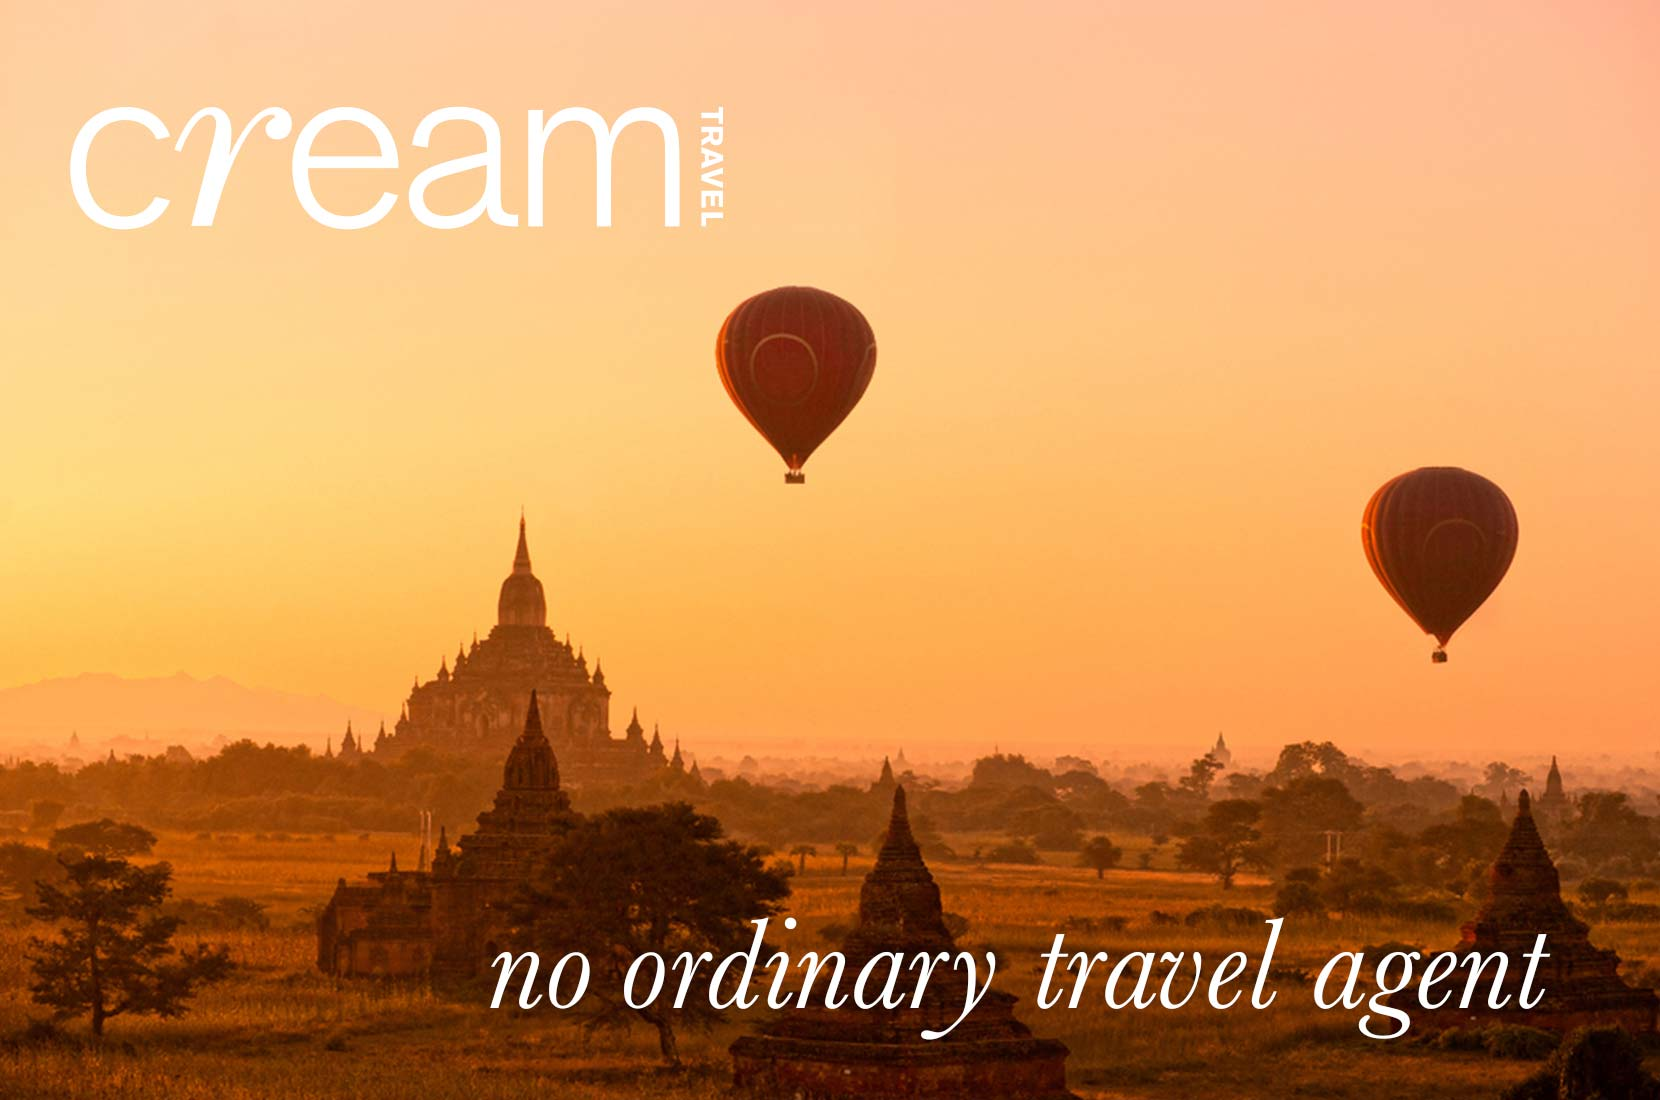 Cream Travel Header and Logo, Hot air balloons over a sunset